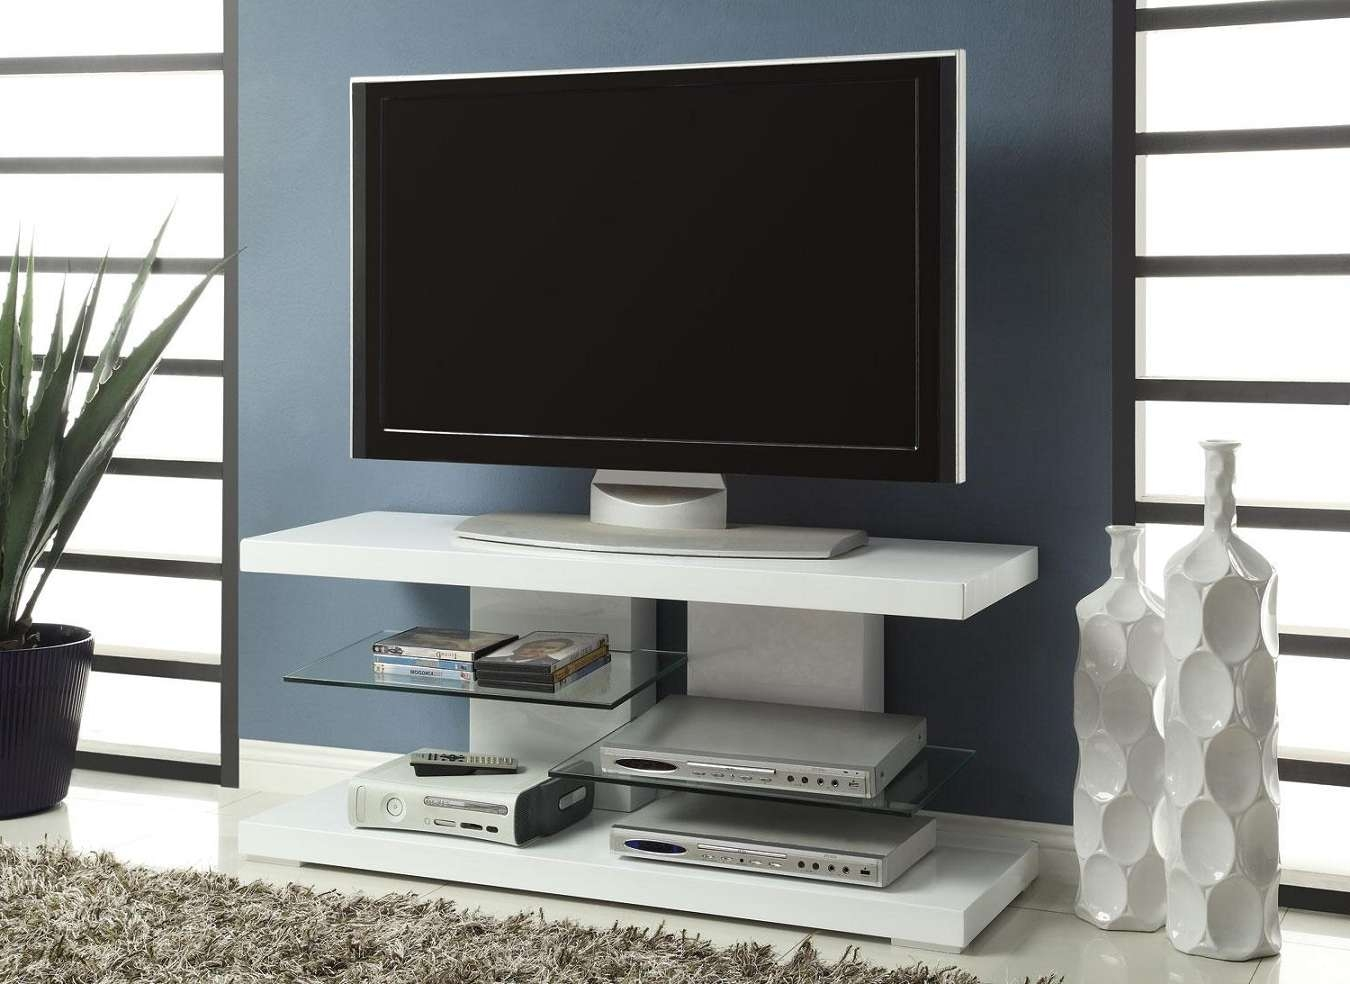 Narrow Tv Stands For Flat Screens – Interior Design In Narrow Tv Stands For Flat Screens (View 7 of 15)